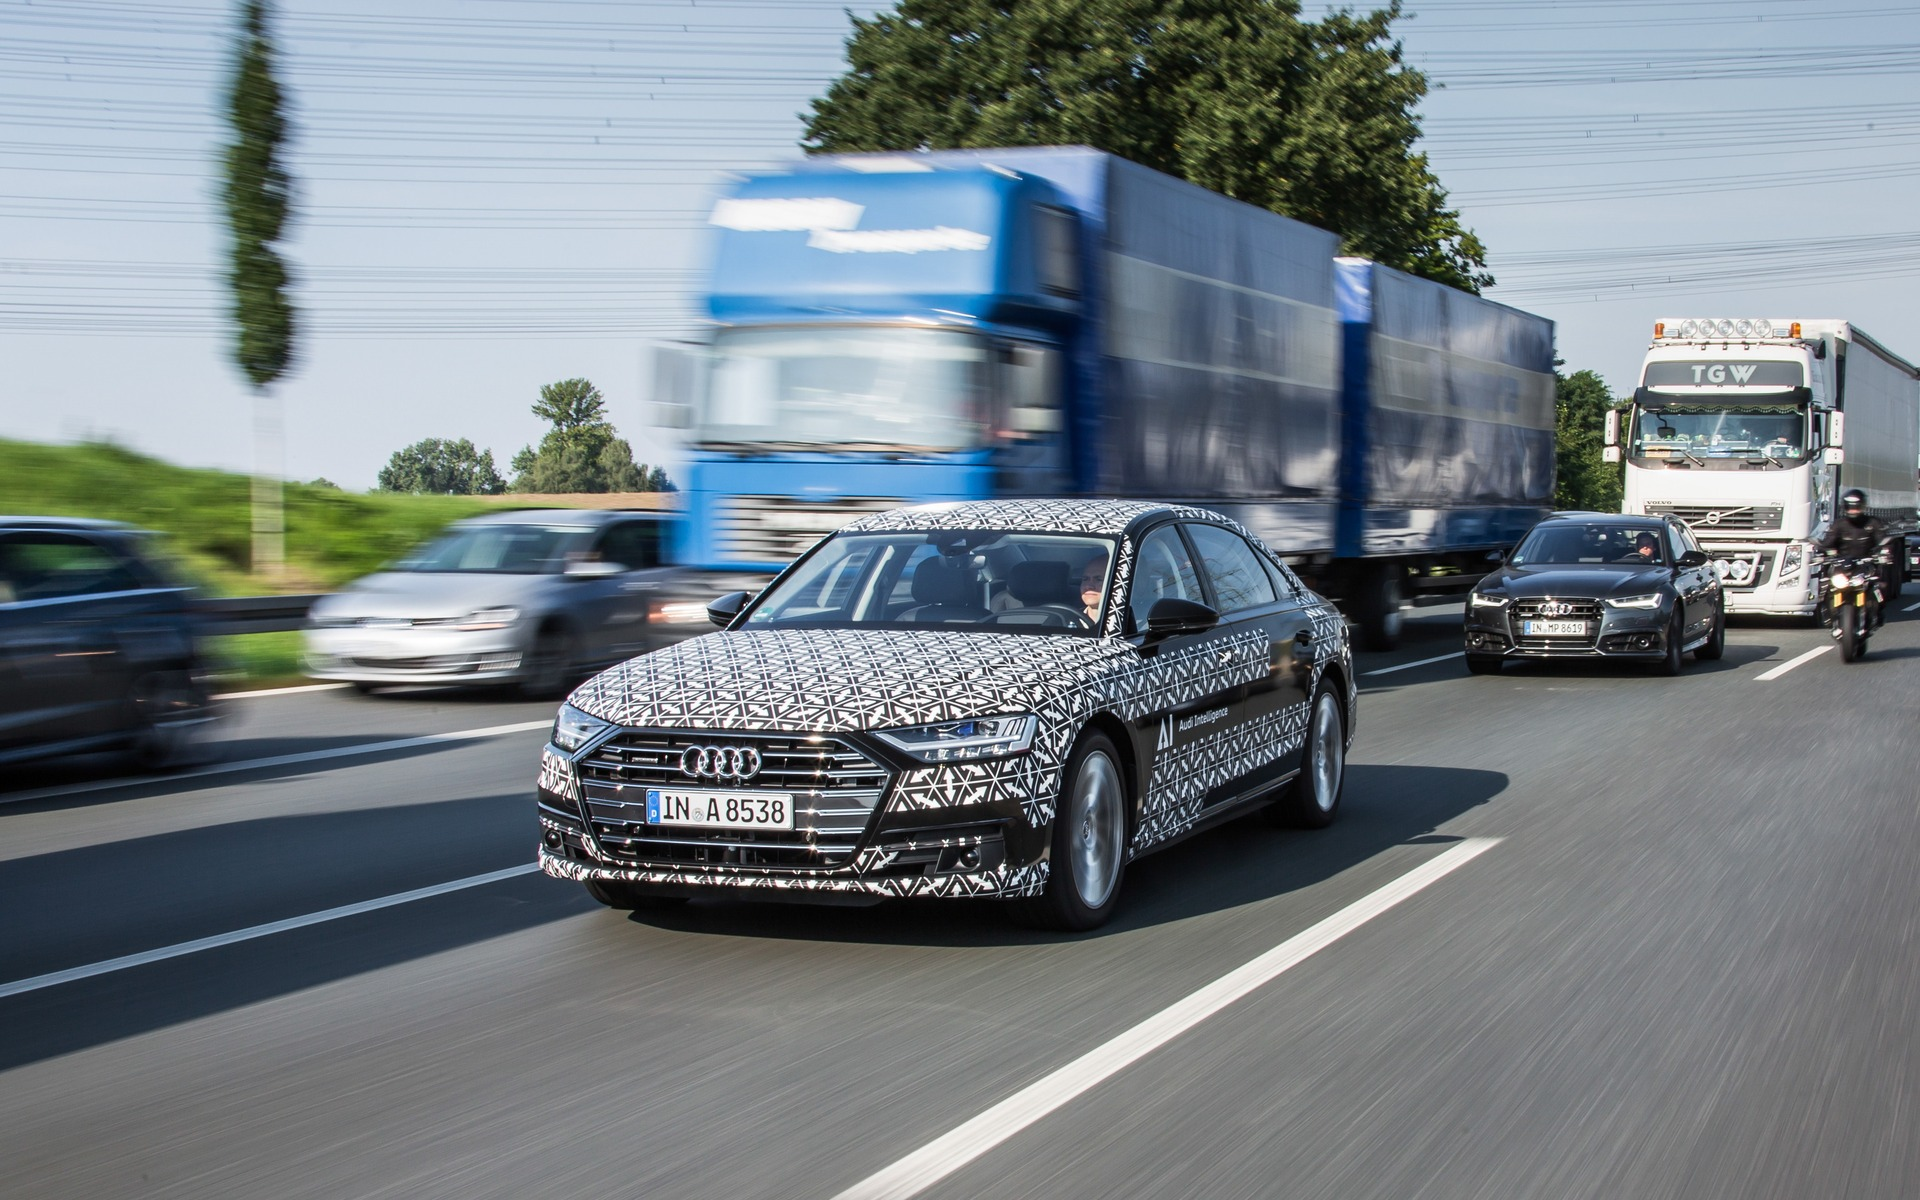 Audi A The Audi That Drives Itself In Traffic The Car Guide - Audi car that drives itself